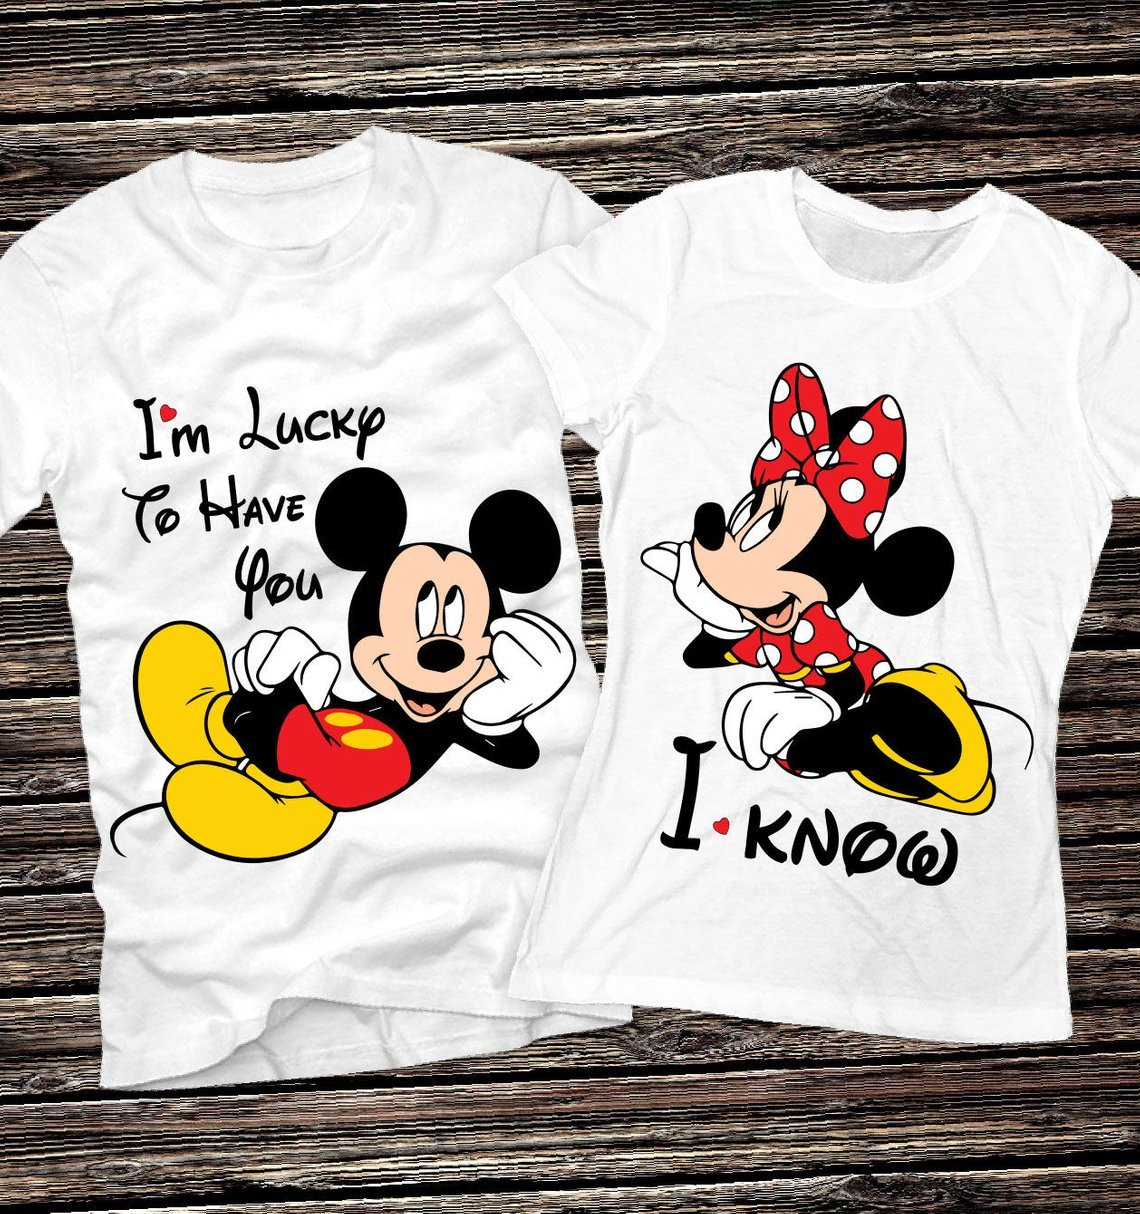 I'm Lucky to Have You Disney Couples Tees